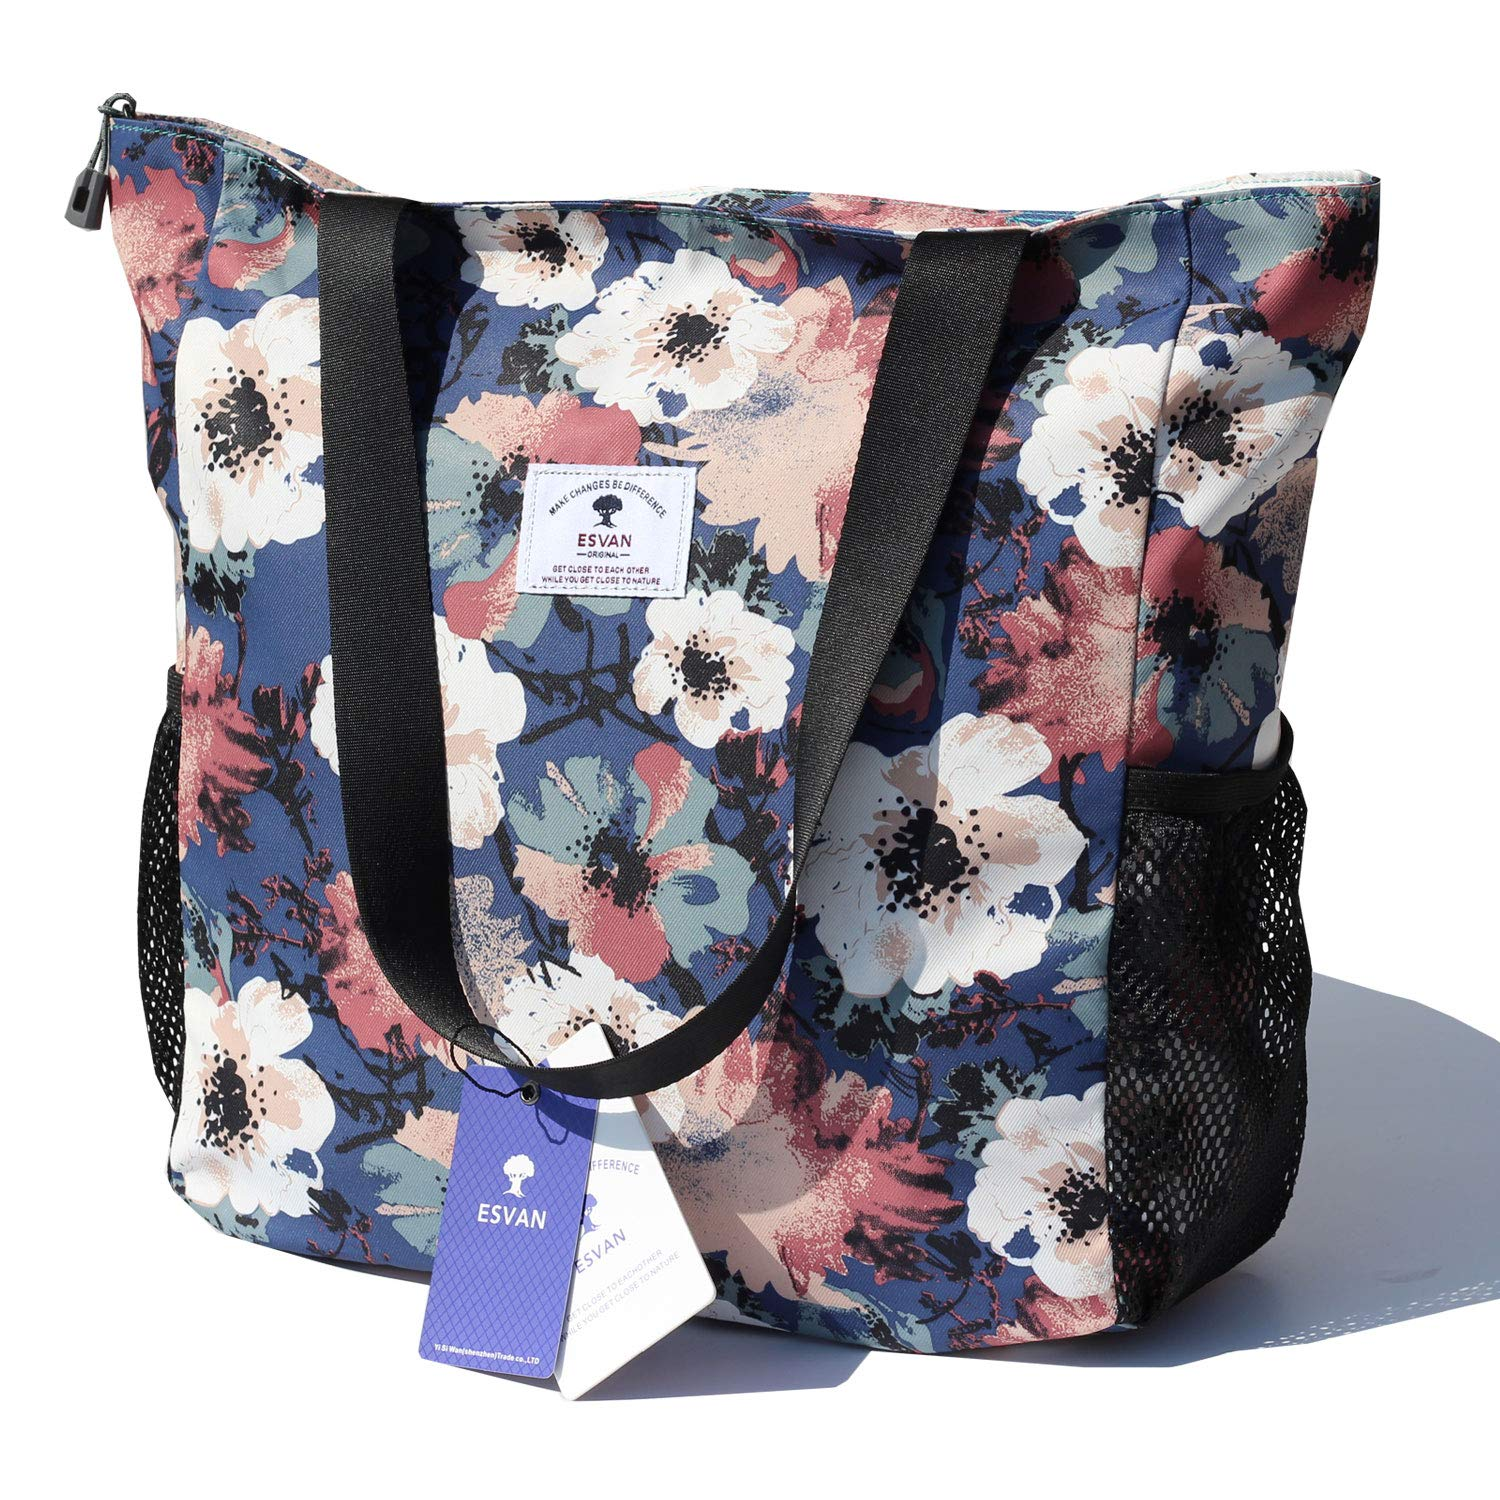 Original Floral Water Resistant Large Tote Bag Shoulder Bag for Gym Beach Travel Daily Bags Upgraded by ESVAN